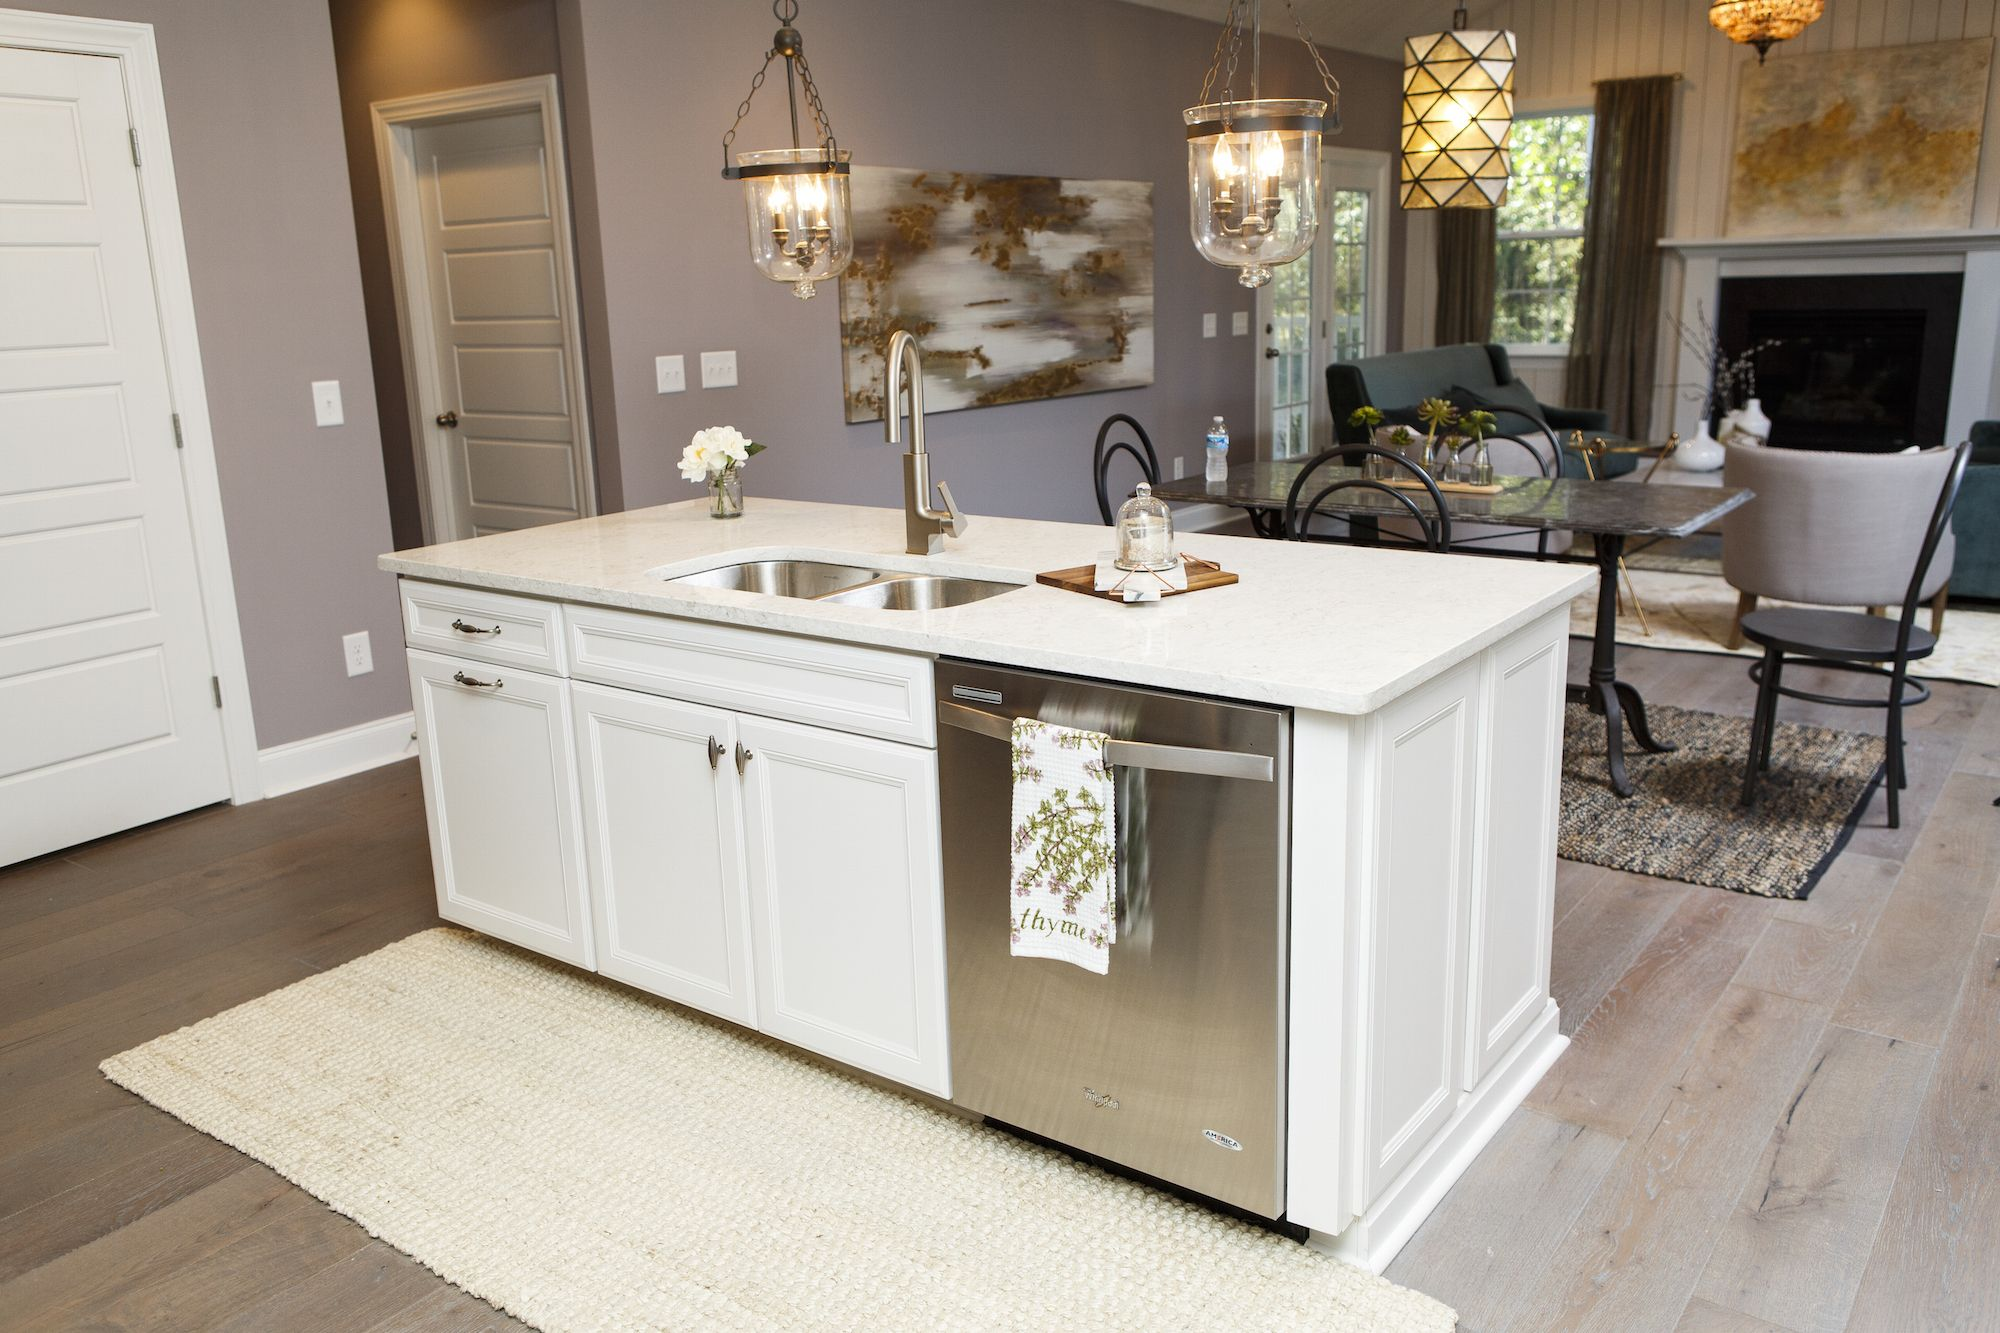 Picking the Right Countertops